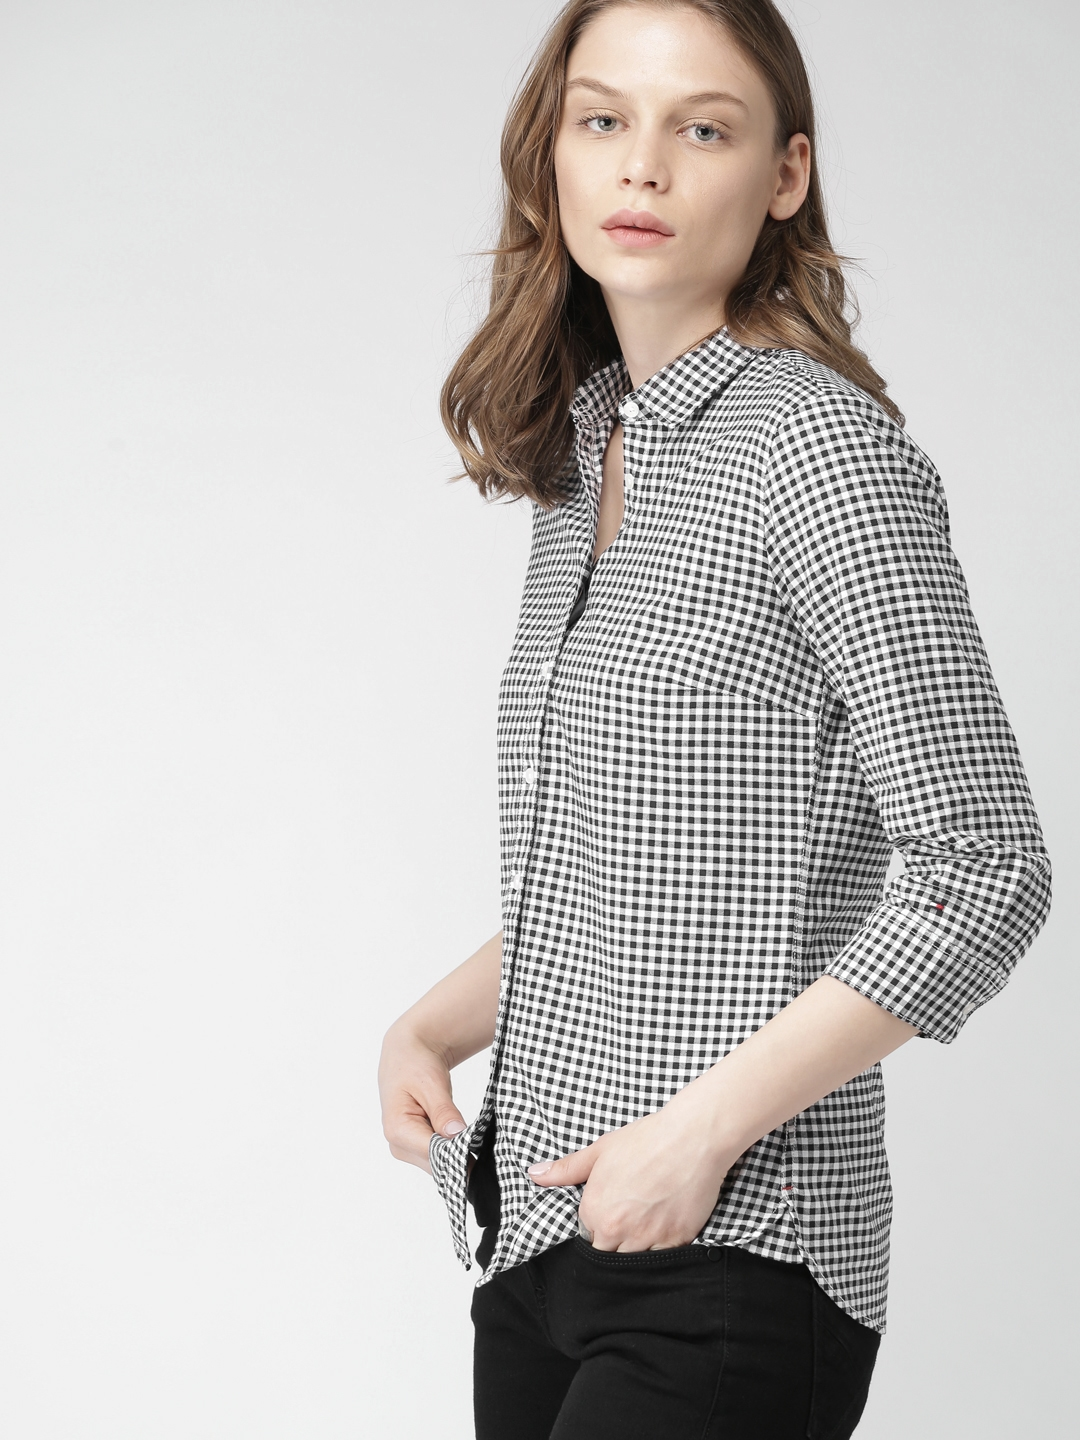 ff7ae0996 Buy Tommy Hilfiger Women White & Navy Blue Slim Fit Checked Casual ...